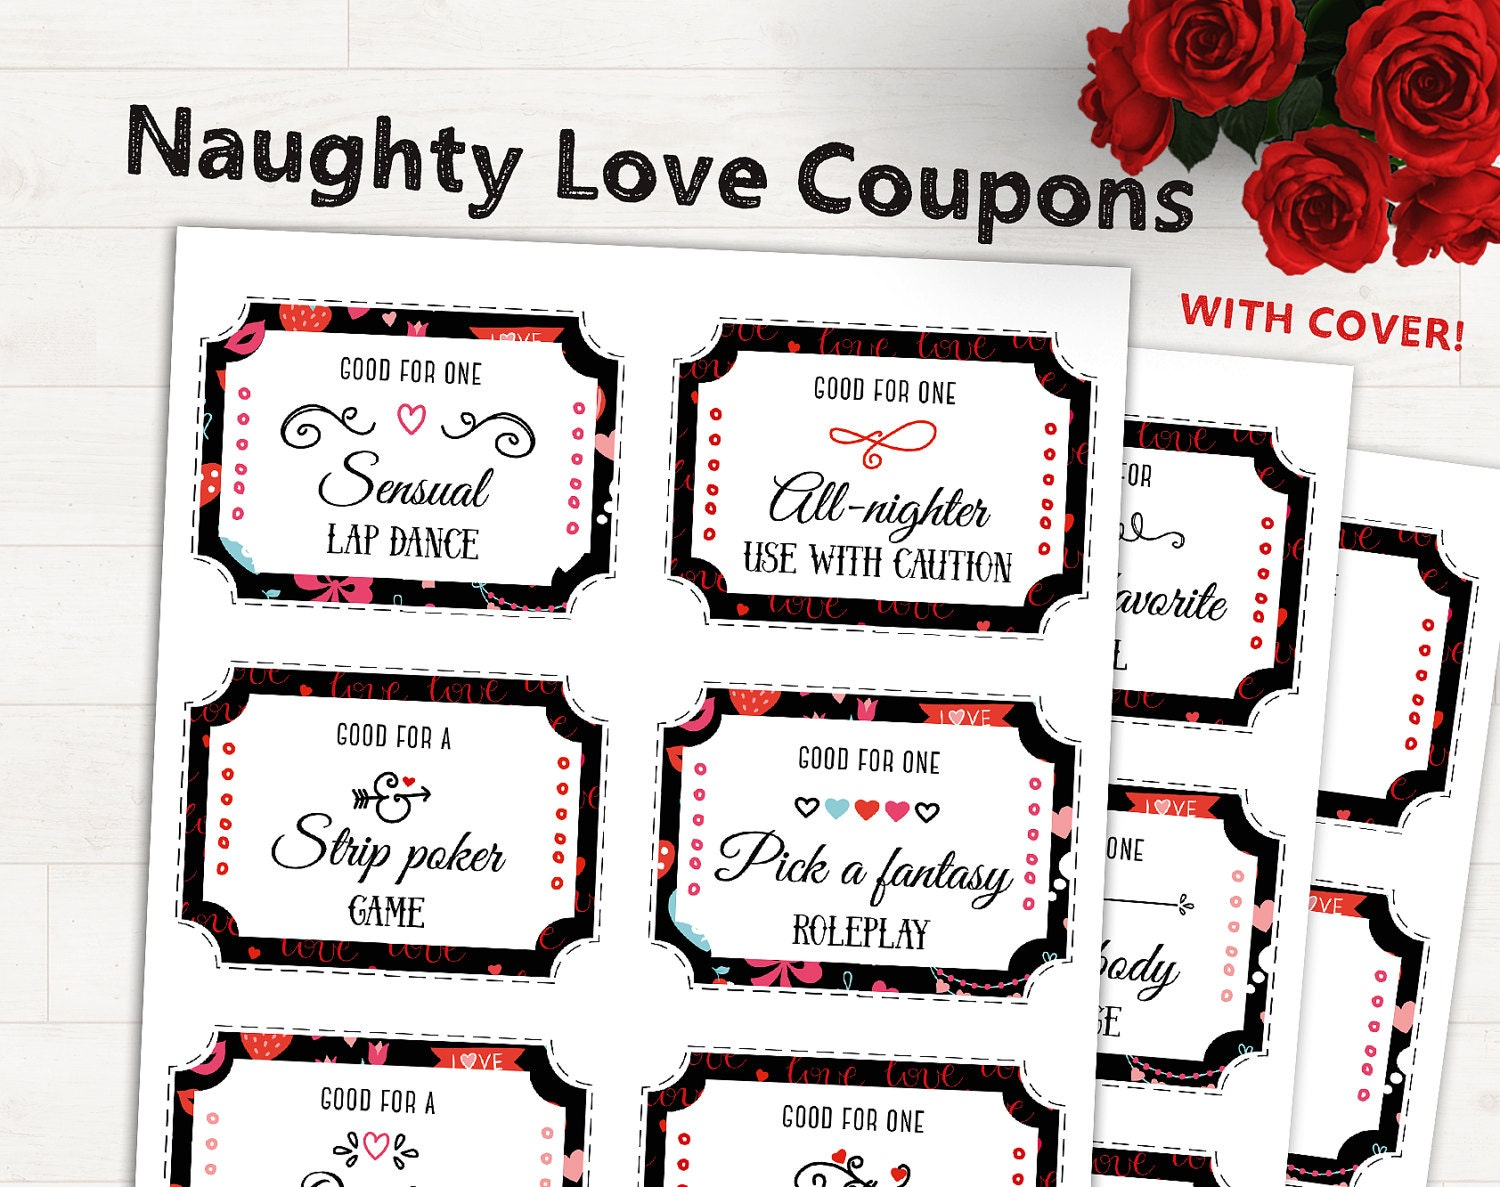 coupon book love coupons for him letter size kinky love coupons naughty love coupon book valentines husband gift kinky valentines boyfriend gift kinky